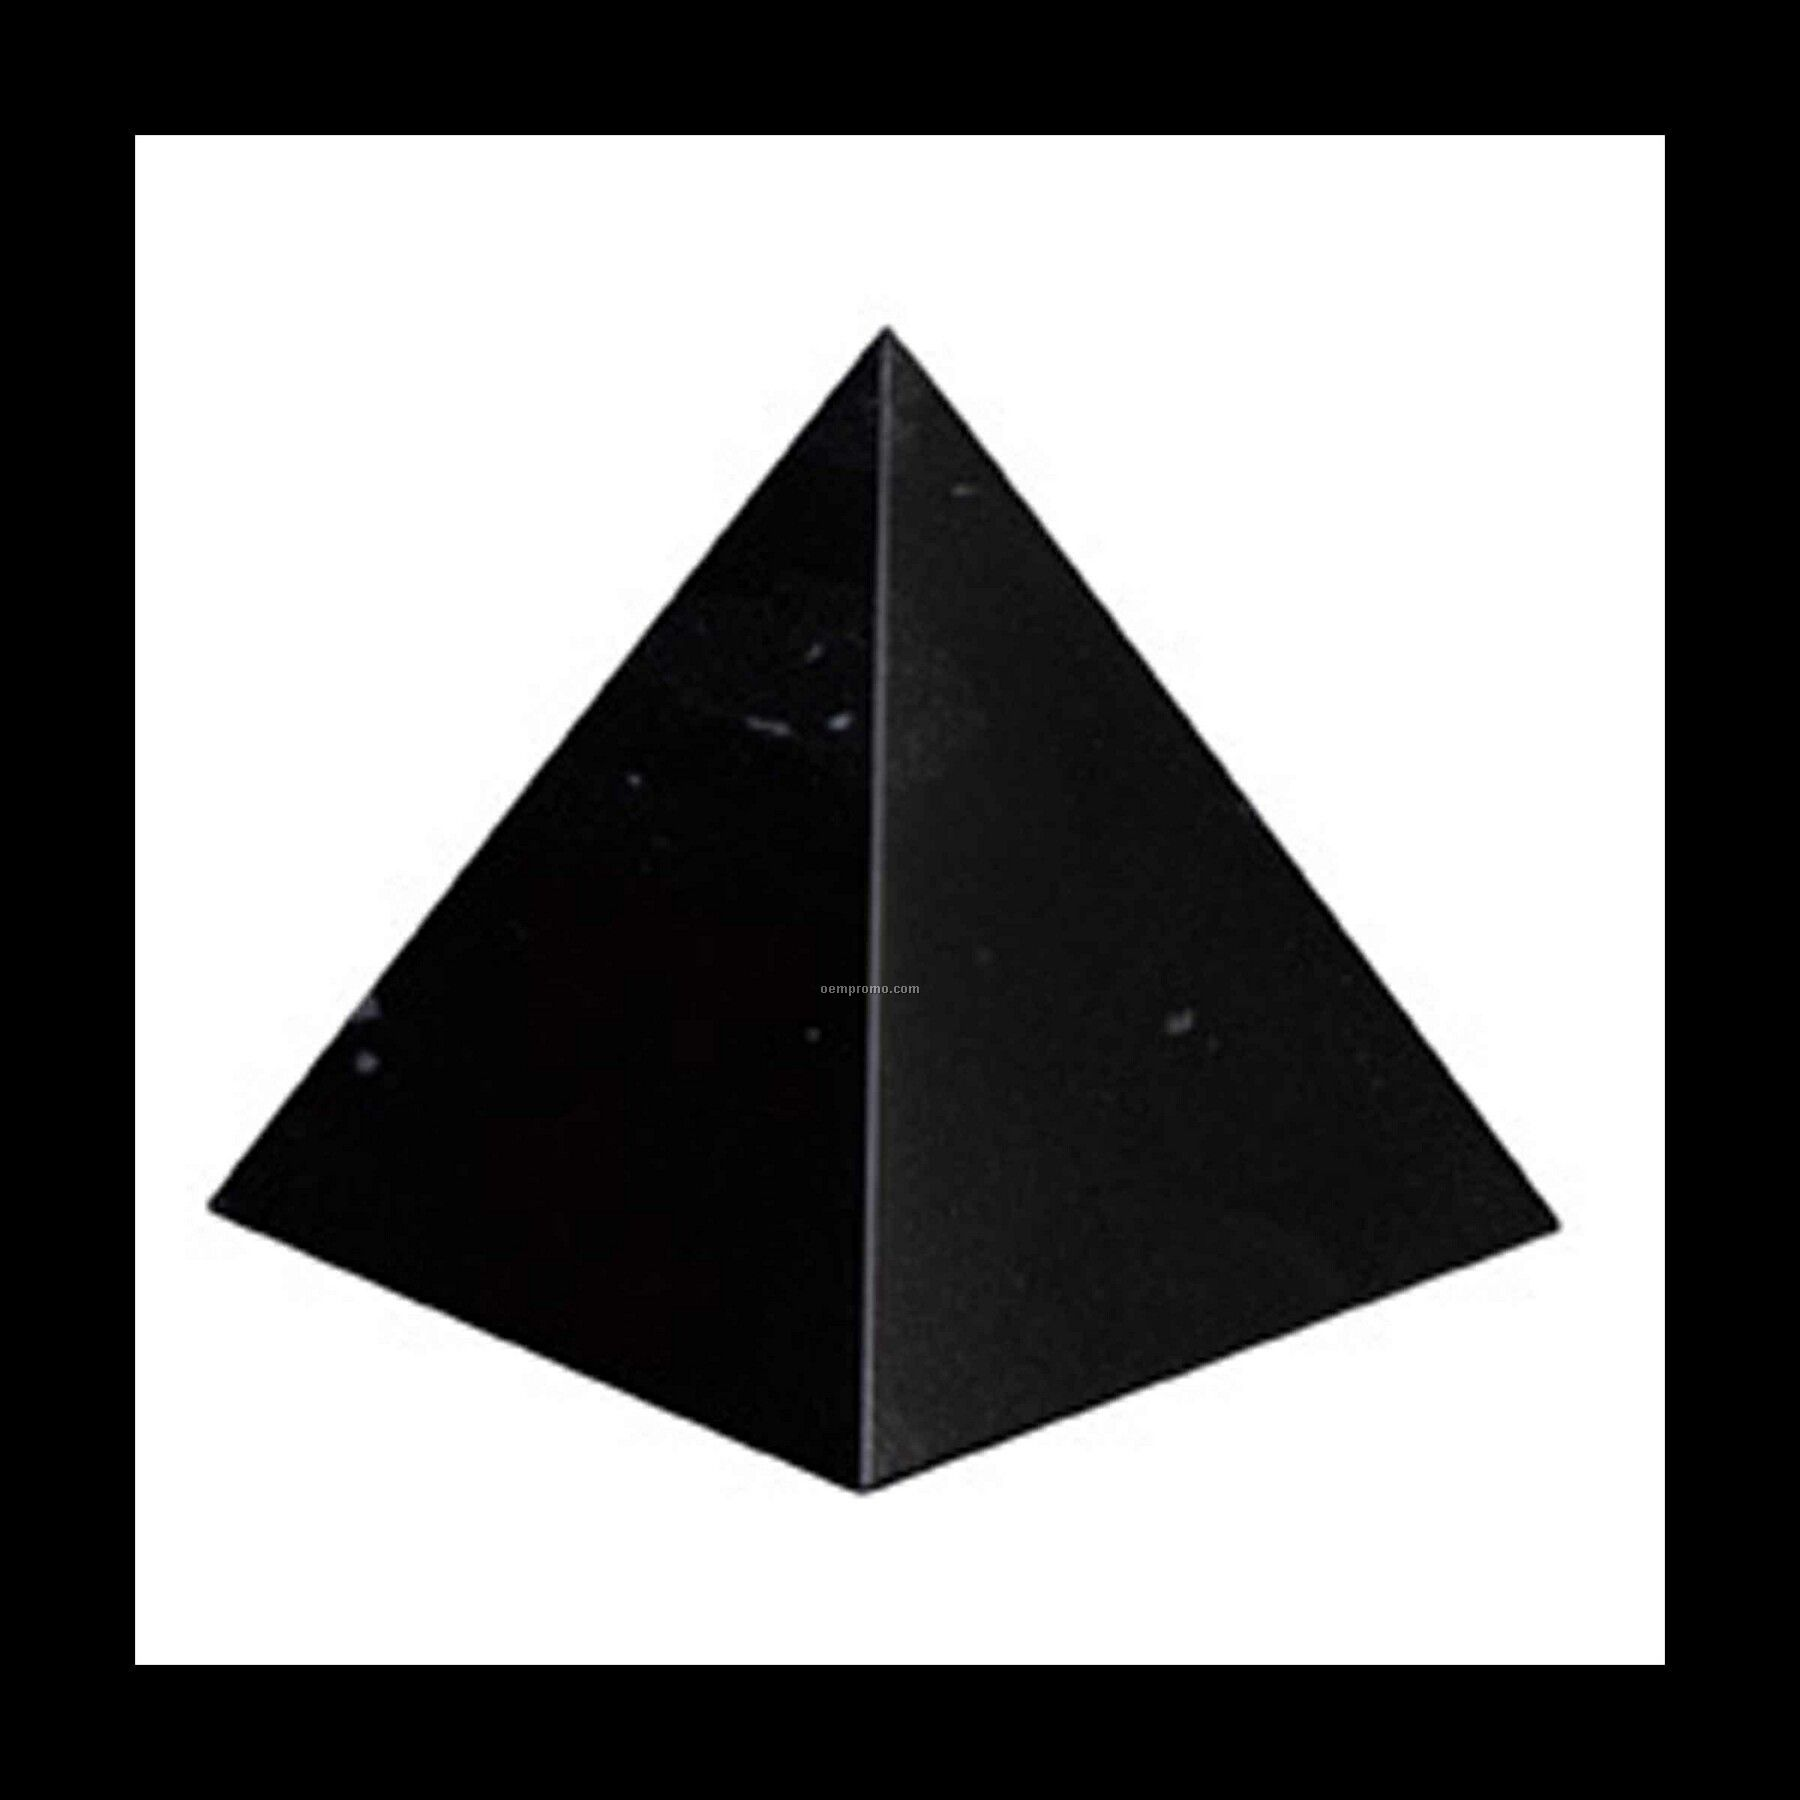 Small Pyramid Award - Jet Black